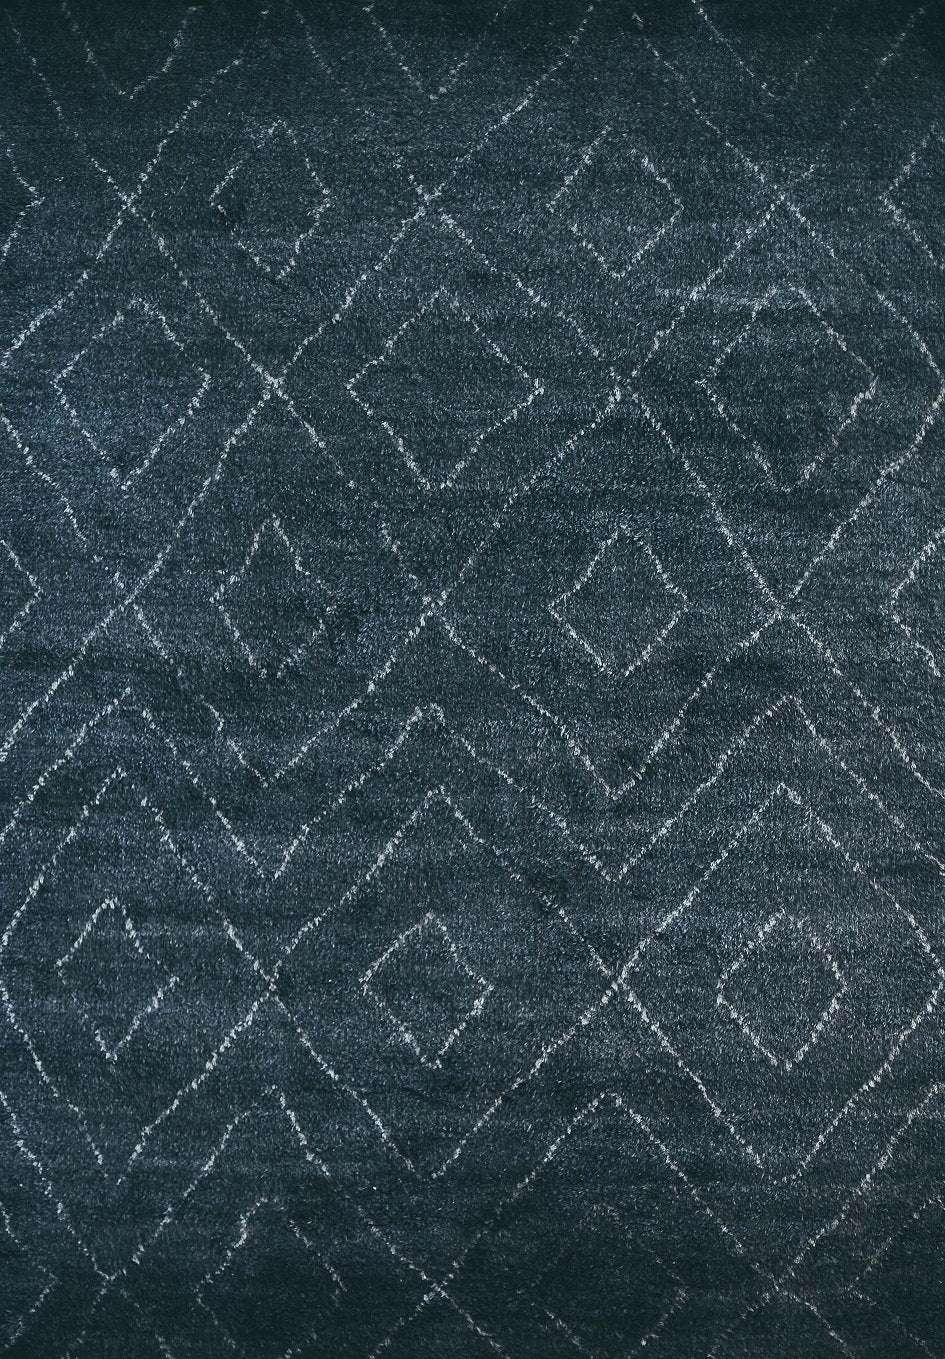 Lingala Dark Rug - Voke Collection - Esque